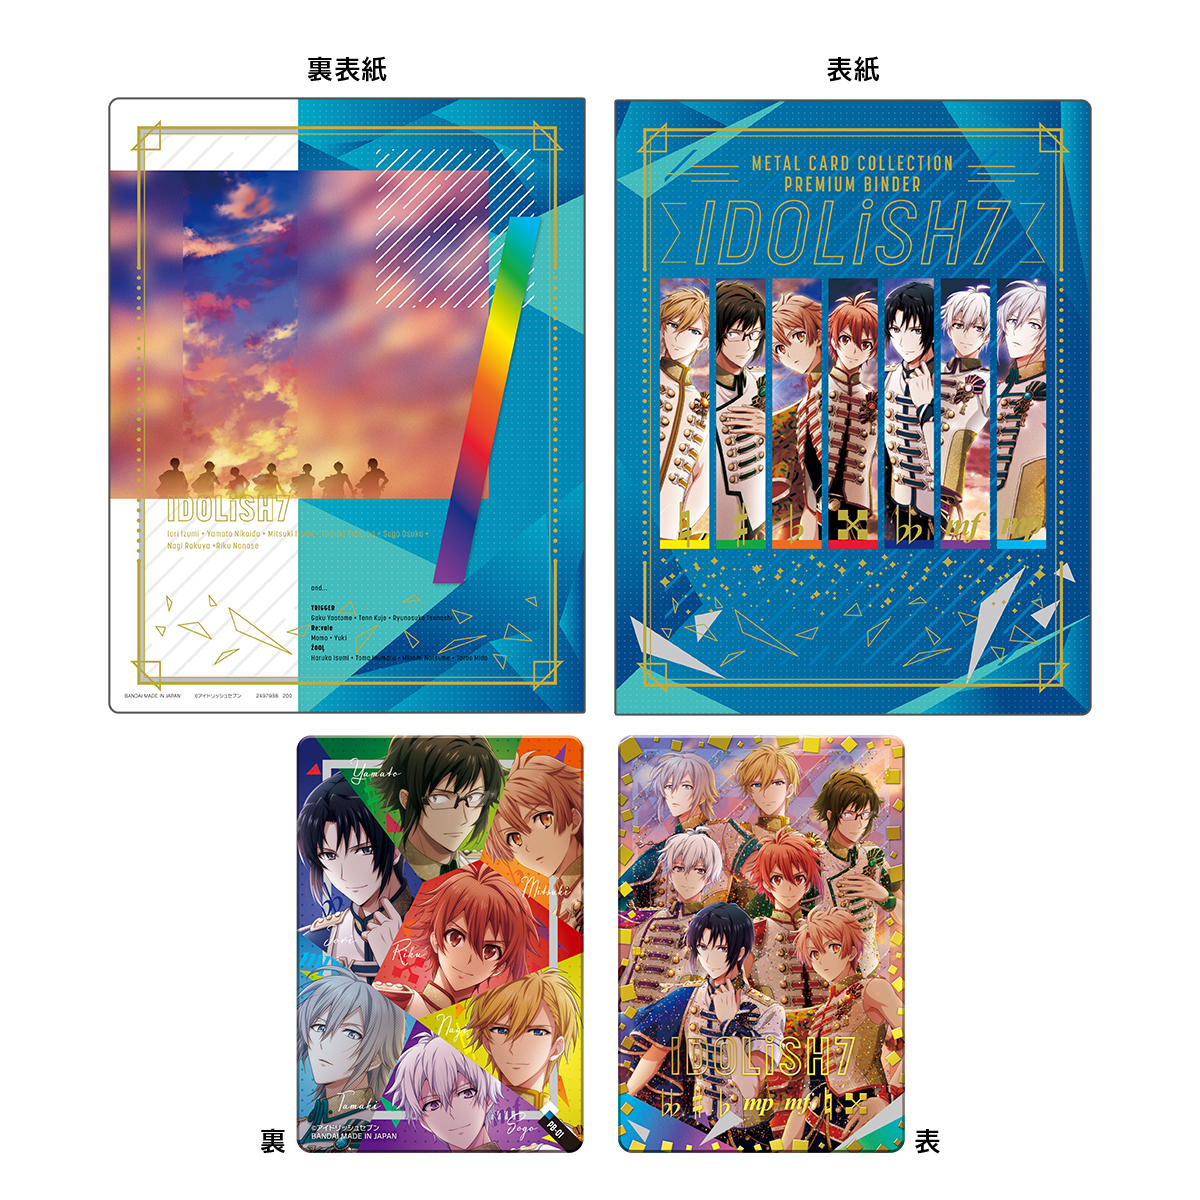 IDOLiSH7 Metal card collection Premium binder